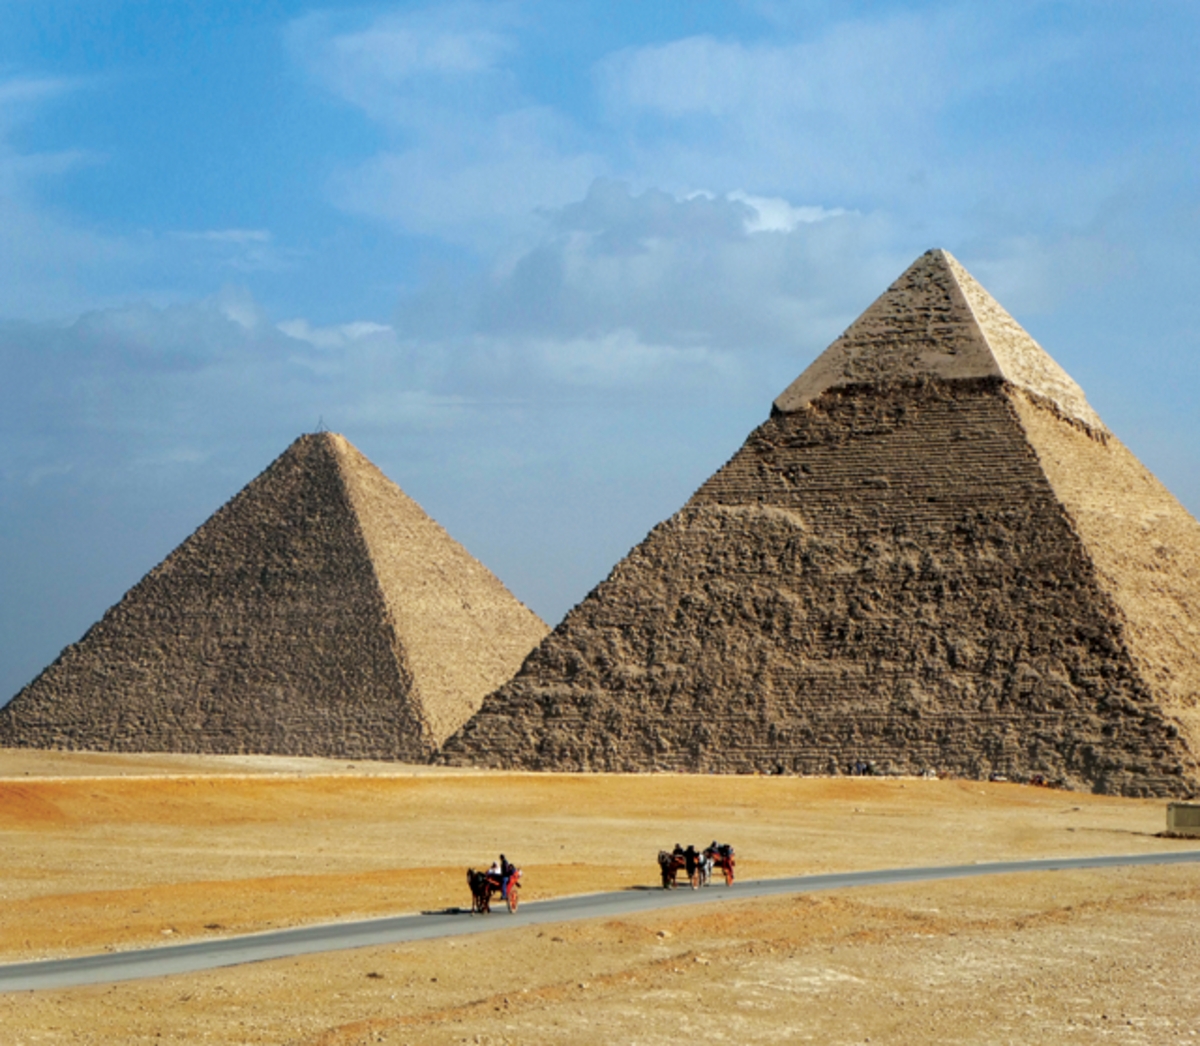 Pyramids are a staple of civilization throughout the world  and across cultures and time.  Built as centers of society and religious rites to measurements that continue astound modern builders and technology.